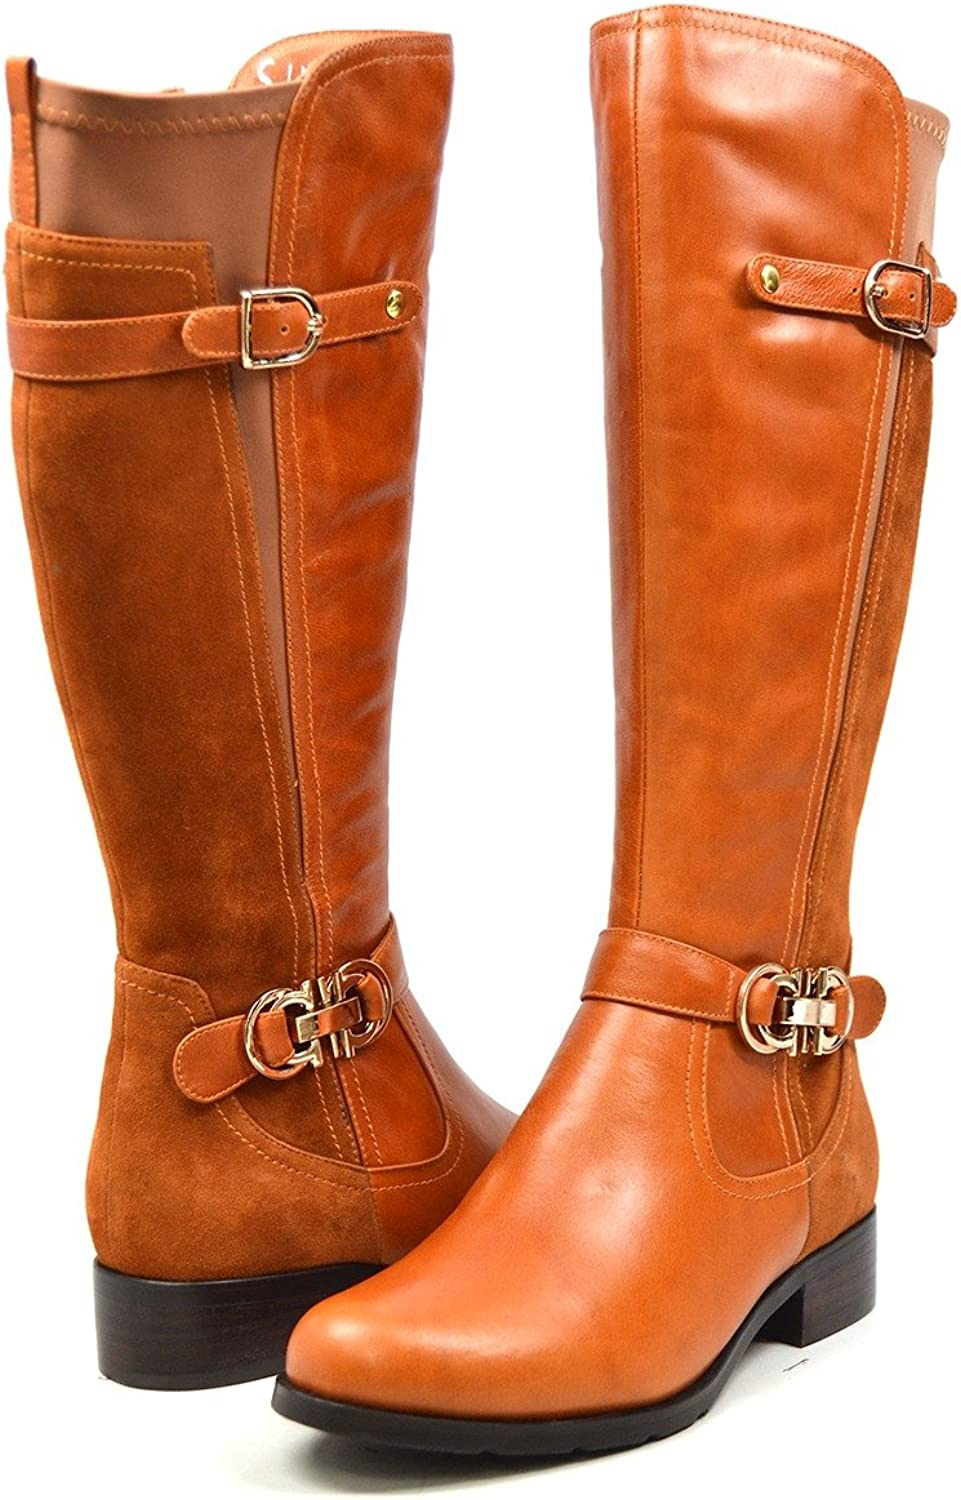 Solemani Valent Extra Slim Leather Calf Max 67% OFF Boot Louisville-Jefferson County Mall Women's